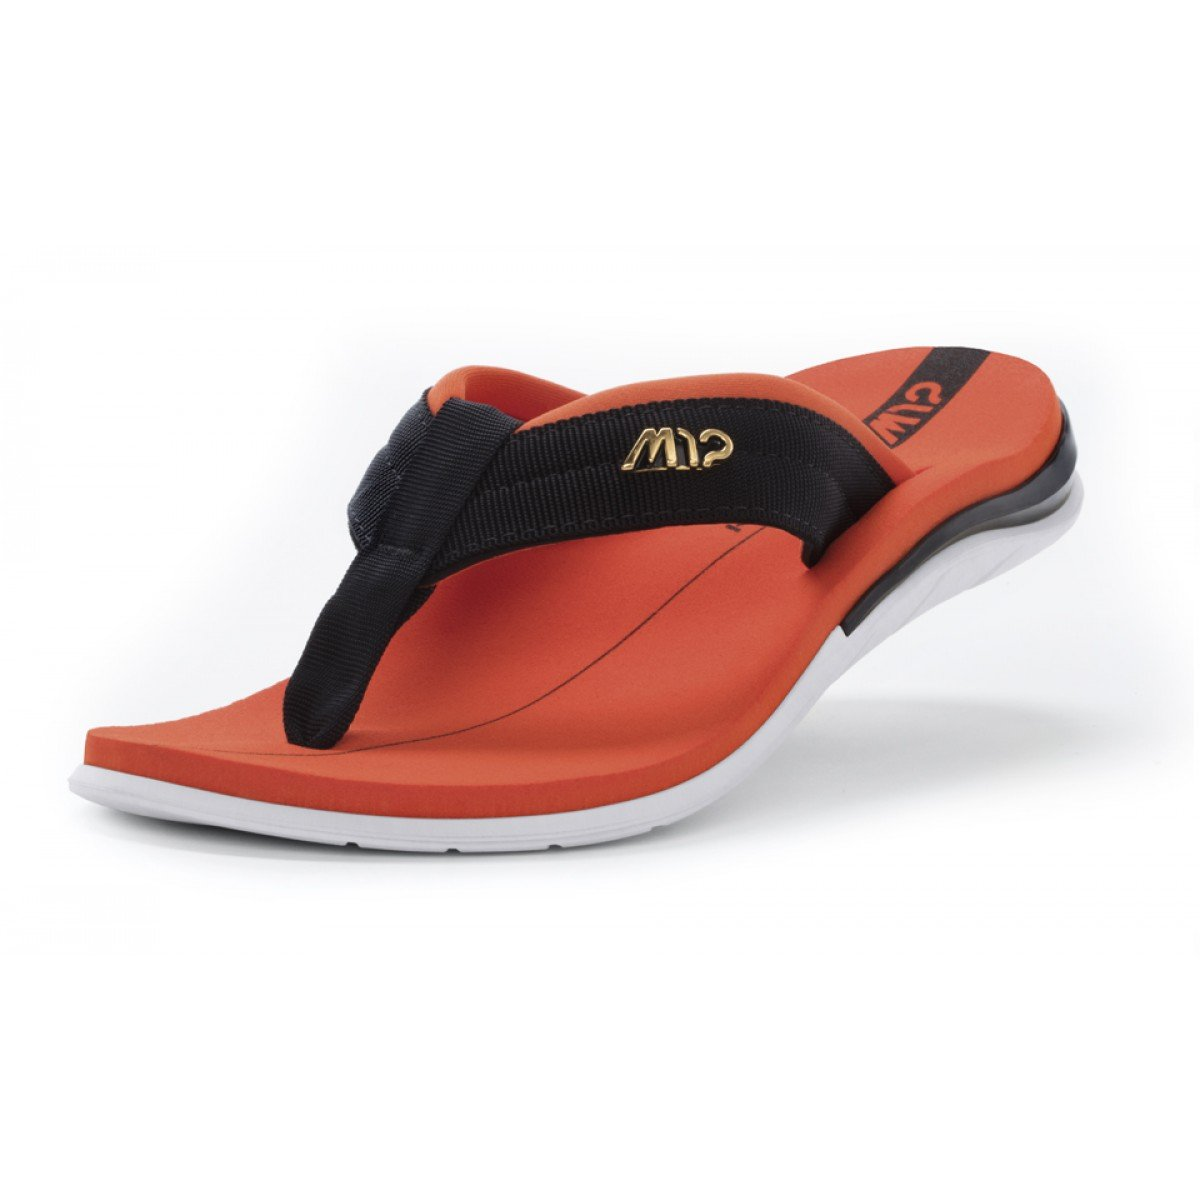 Chinelo Kenner Action Gel M12 Masculino - Laranja